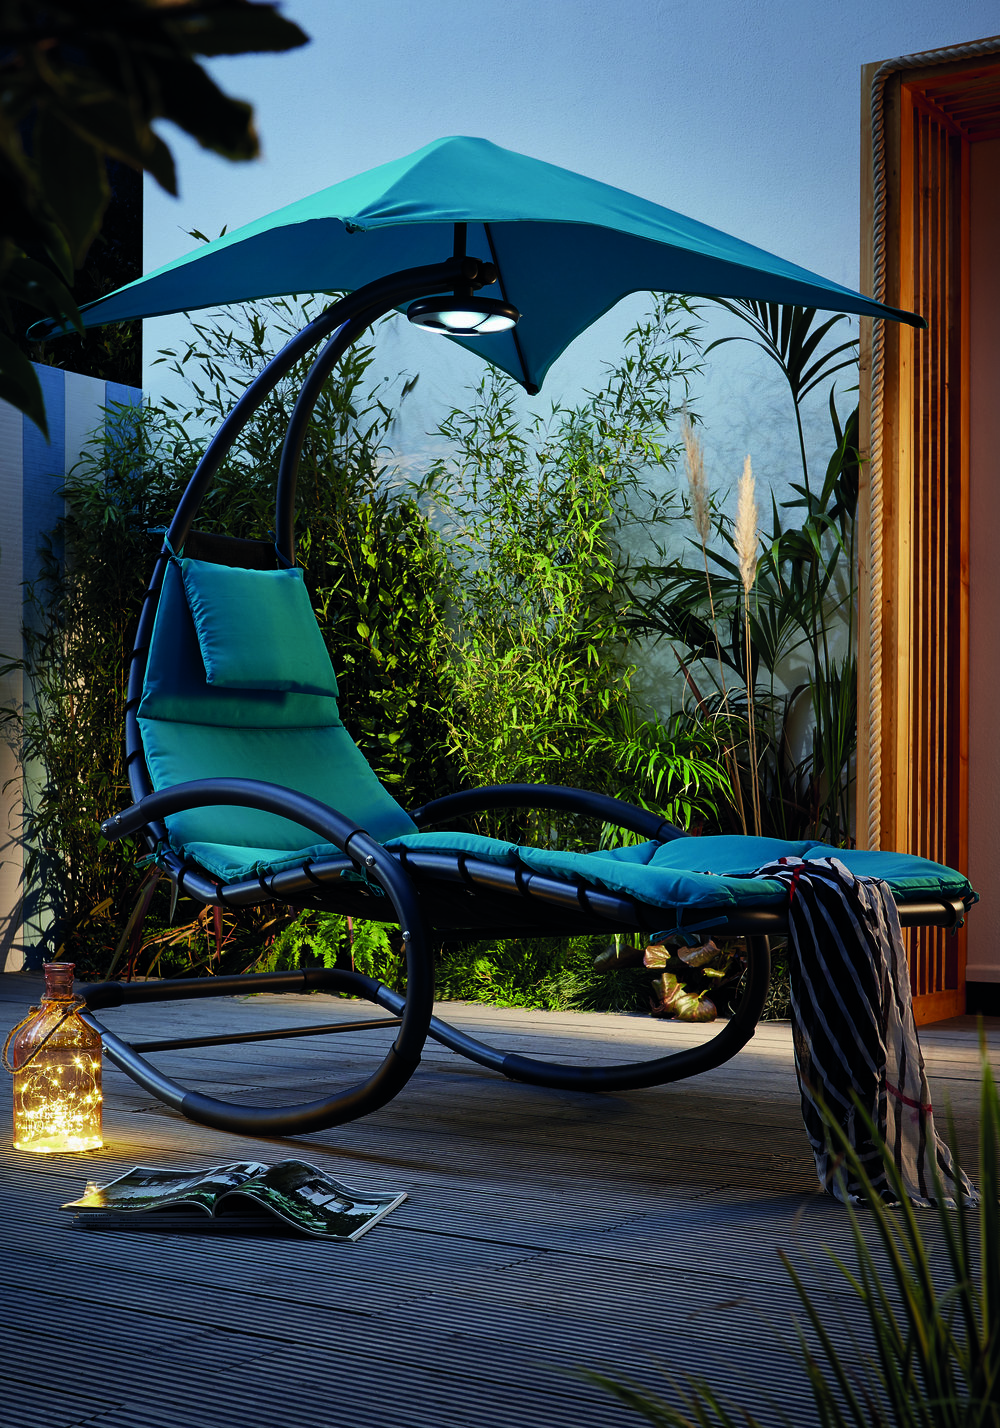 Relax outdoors with The Range's Helicopter Chair — Yours on fire range, crj 200 range, bomb range, learjet range, aircraft range,